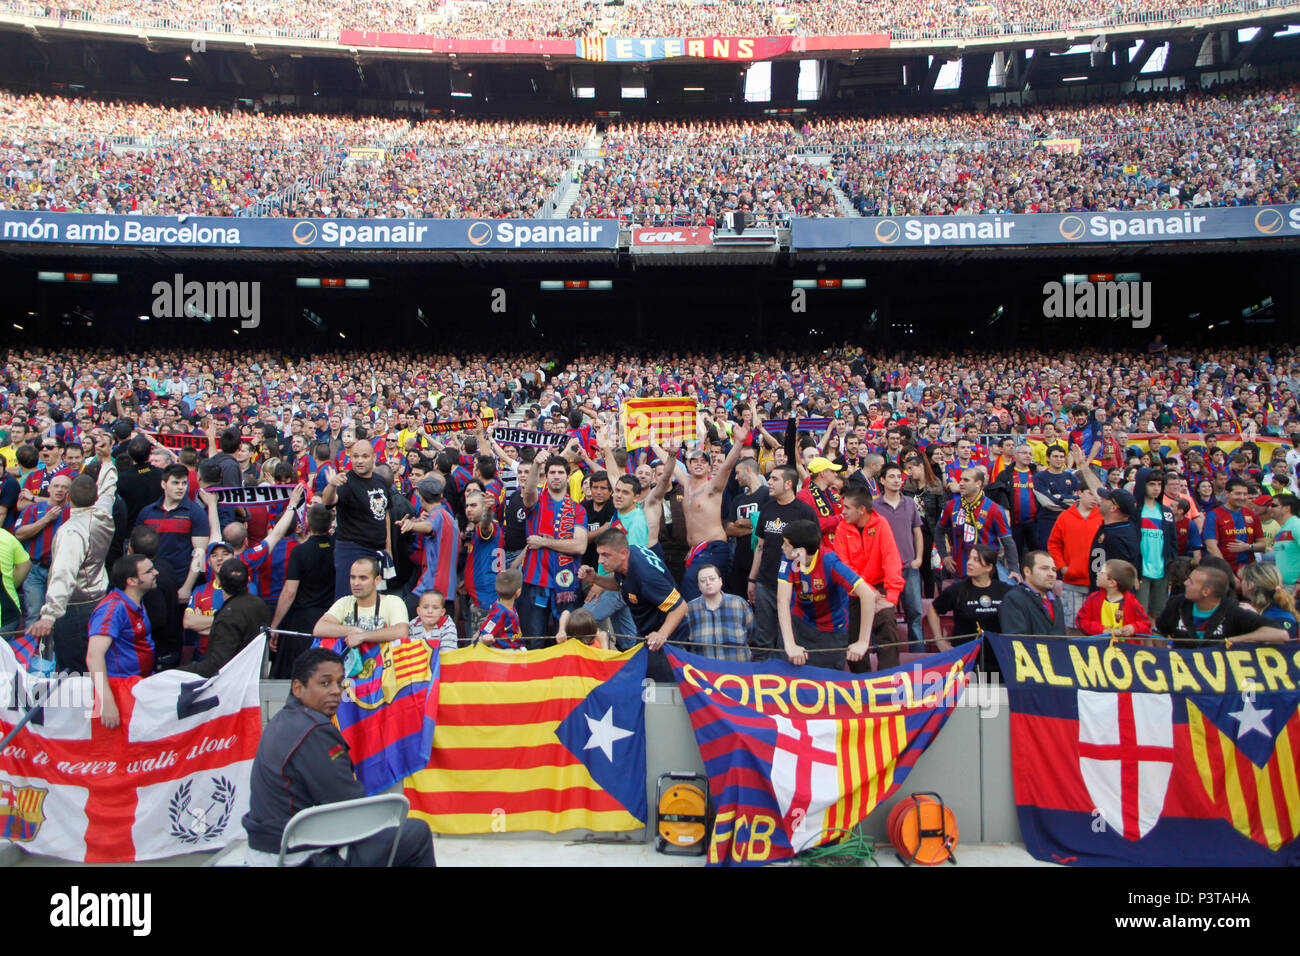 Barcelona, __Catalonia, Spain - Football fans in the Camp Nou stadium in Barcelona - Stock Image